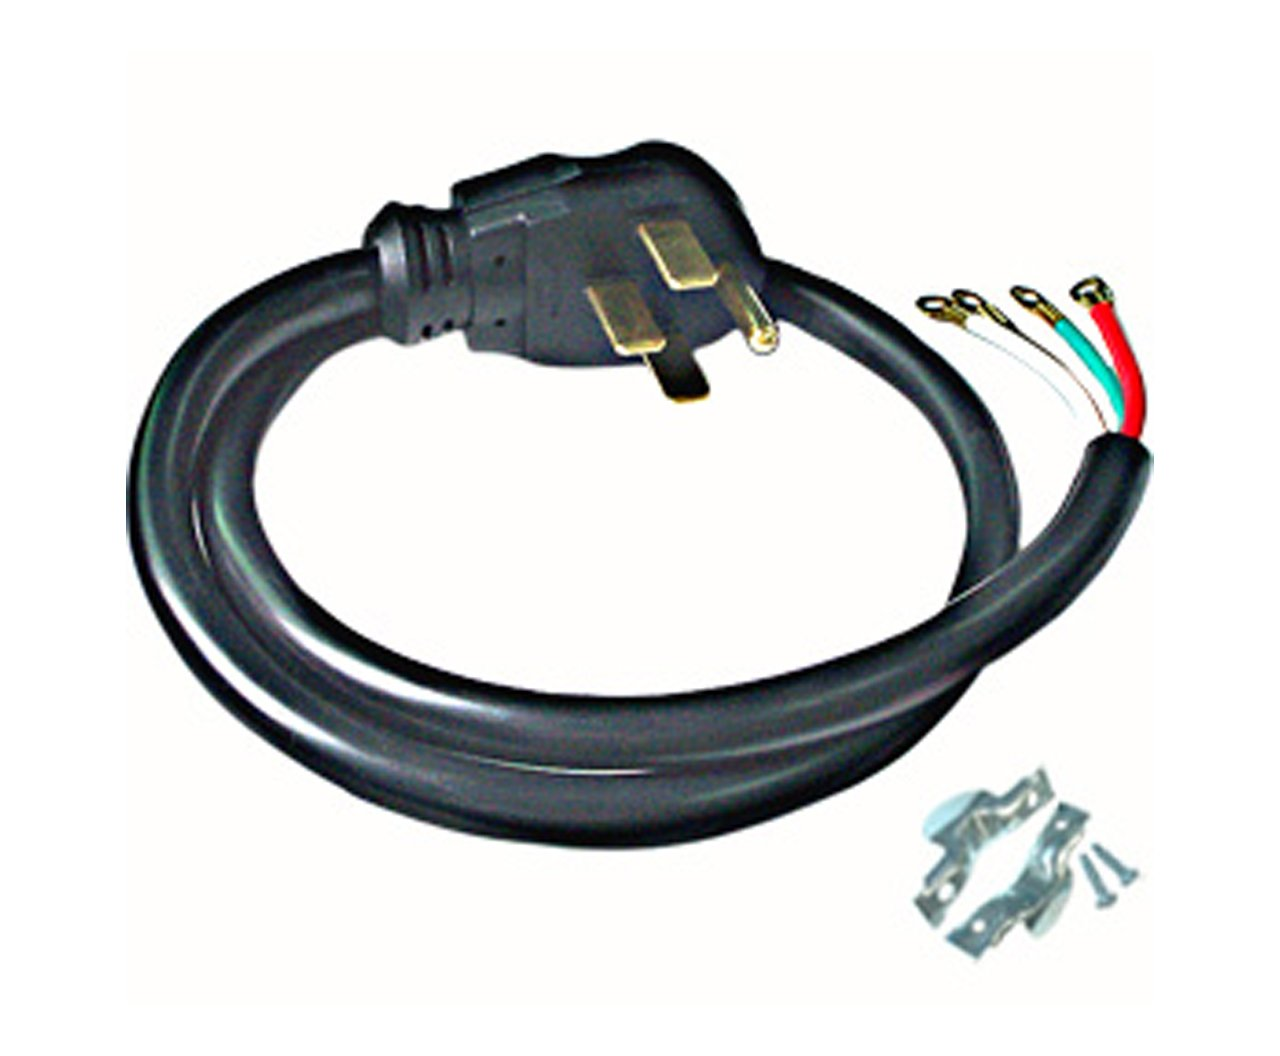 Conntek RL-40401 4-Feet 40-Amp with Wire Range Power Cord